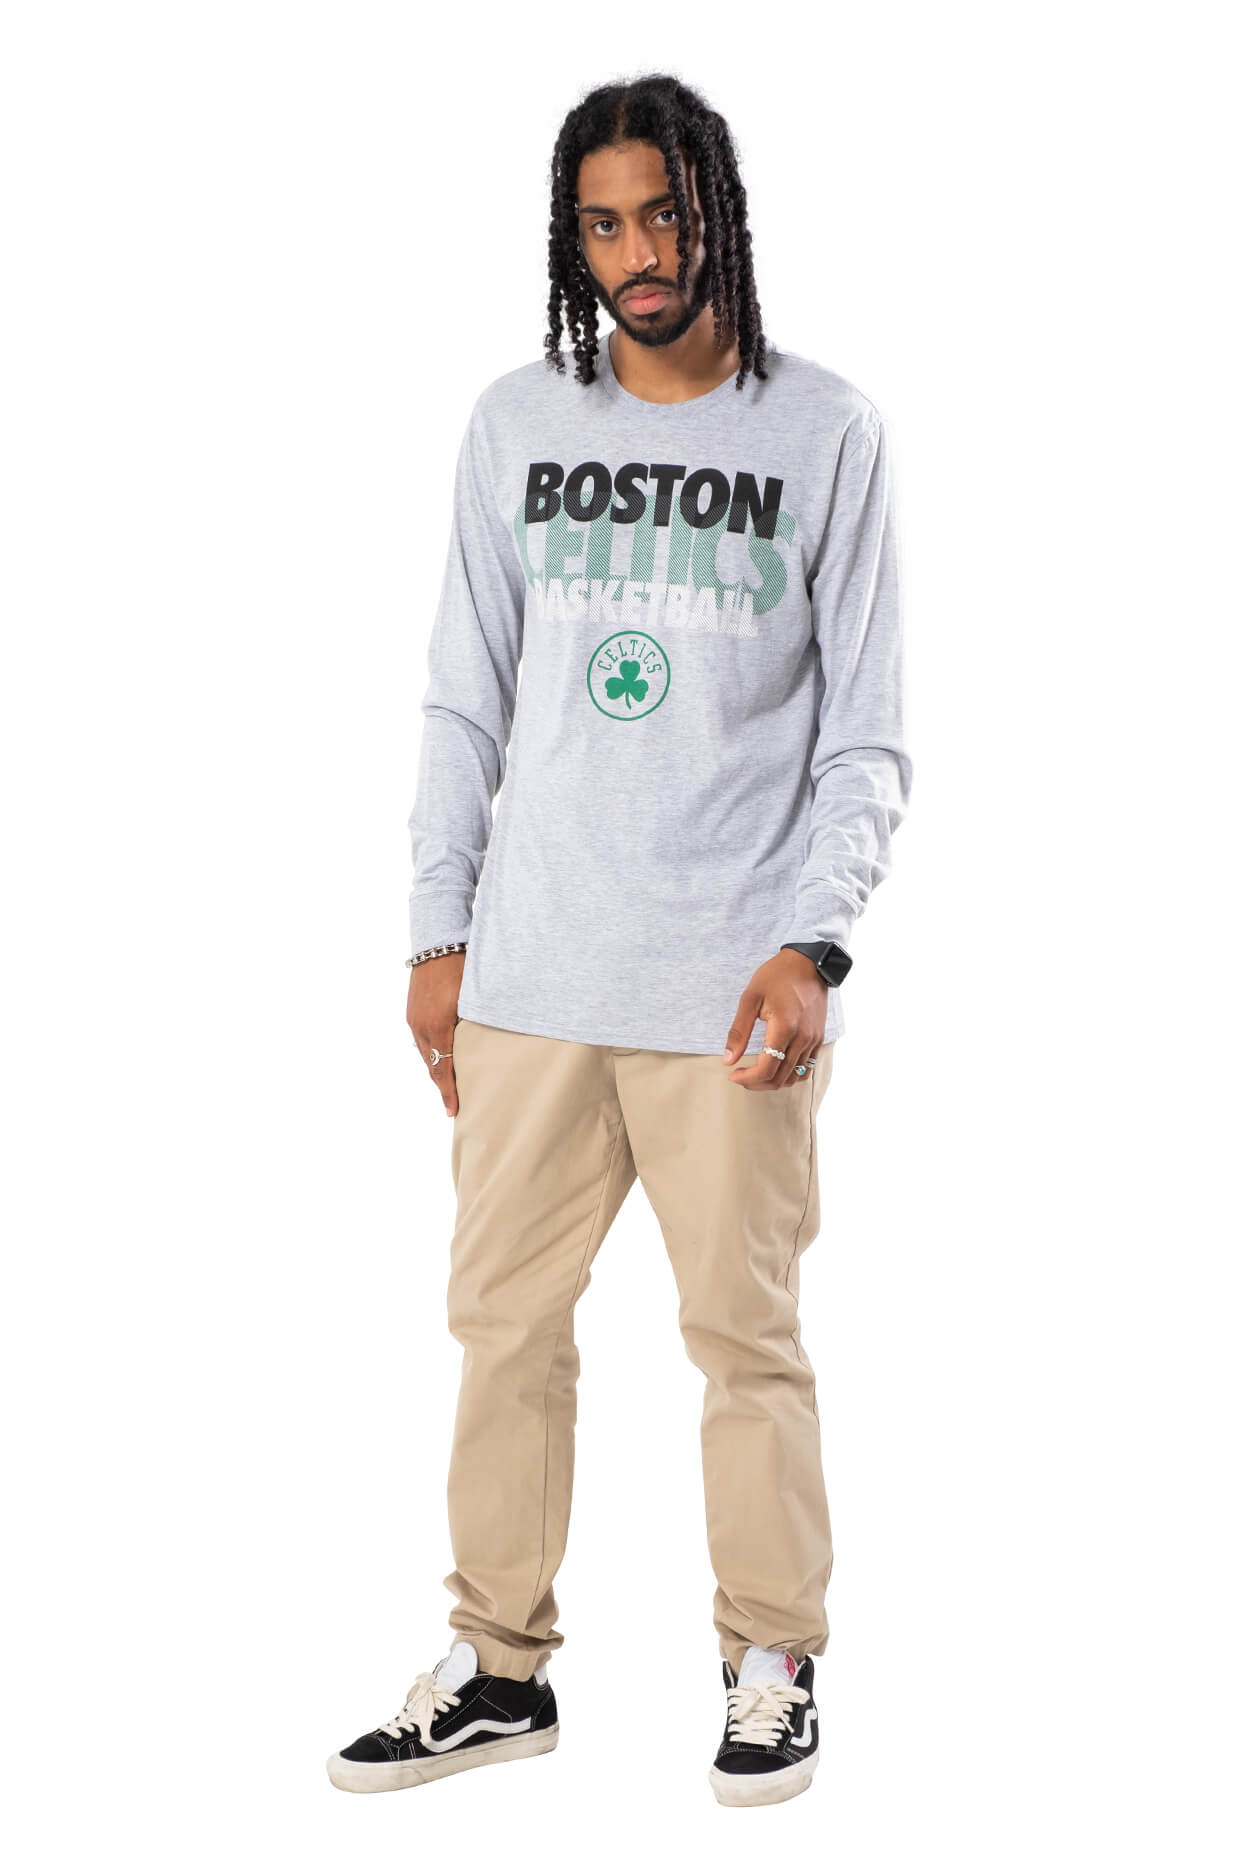 NBA Boston Celtics Men's Long Sleeve Pullover|Boston Celtics